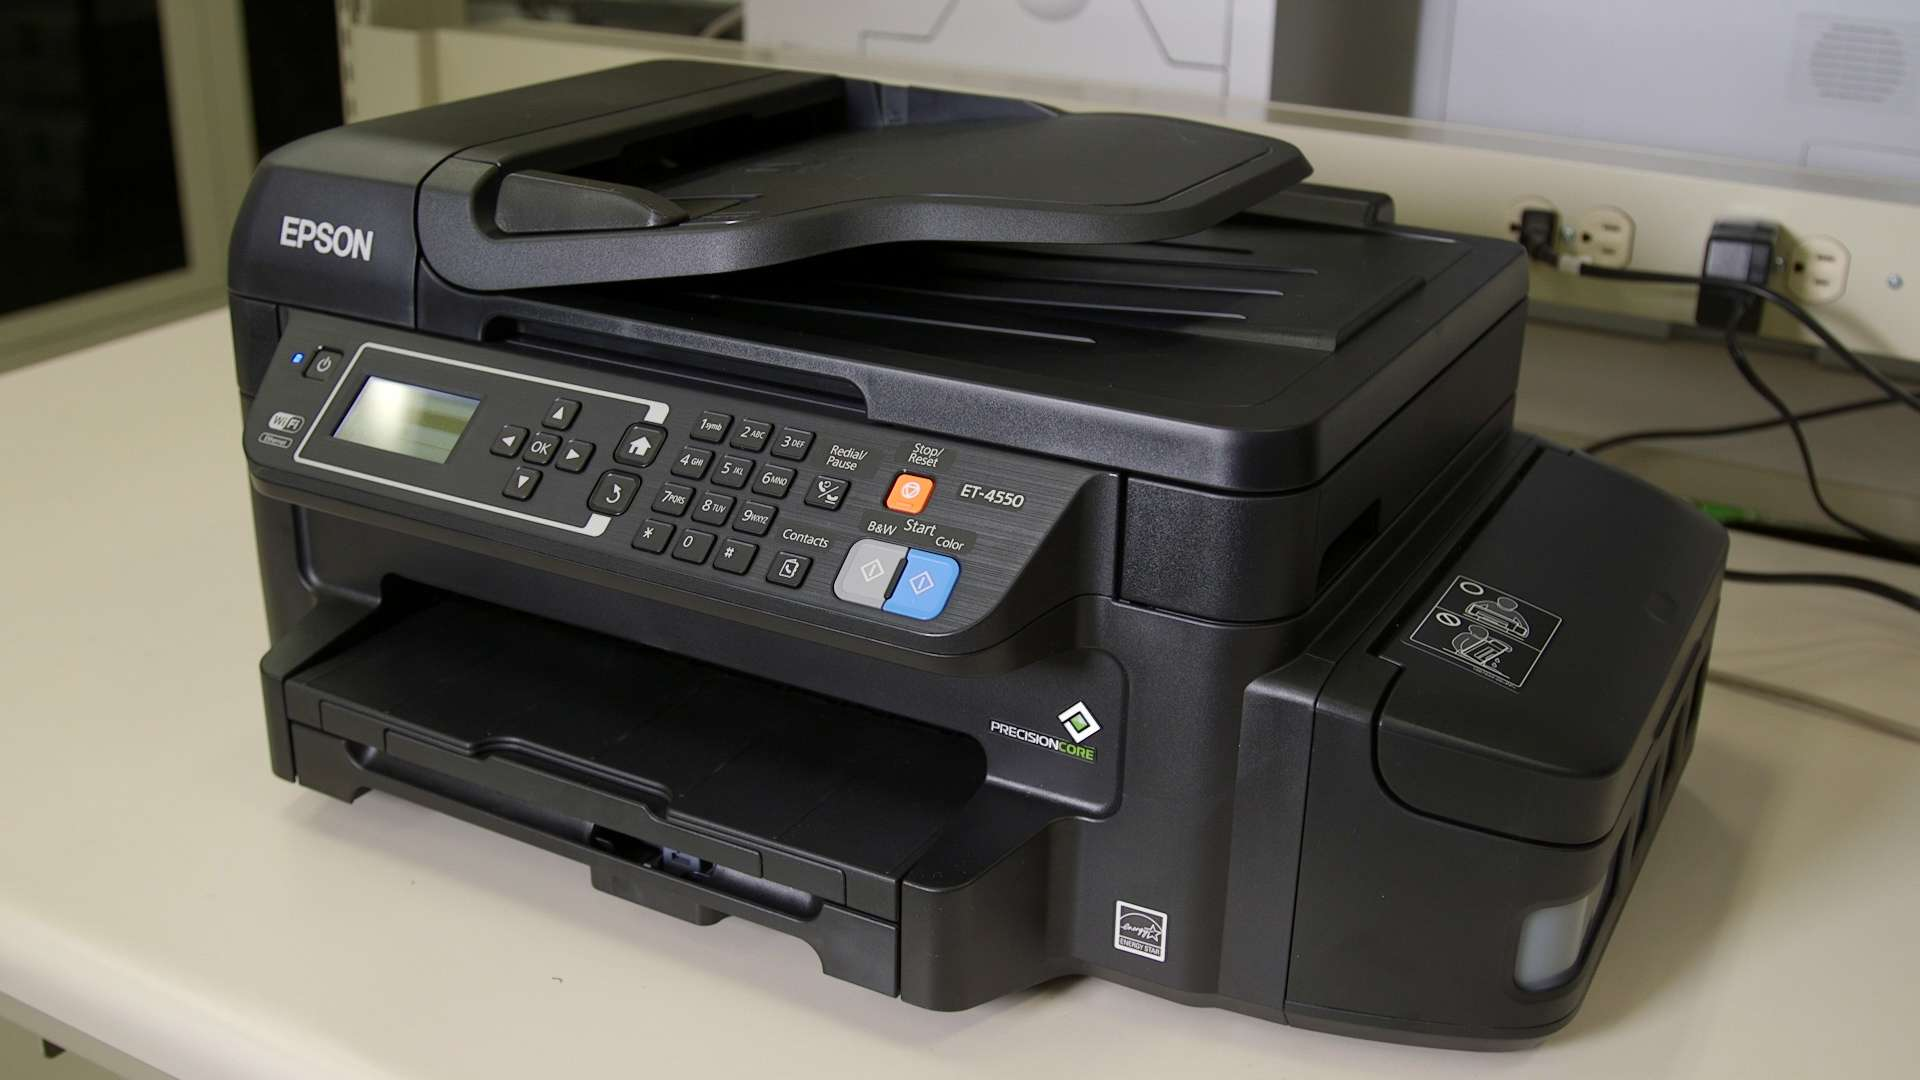 Epson Workforce ET-4550 EcoTank Printer - Consumer Reports